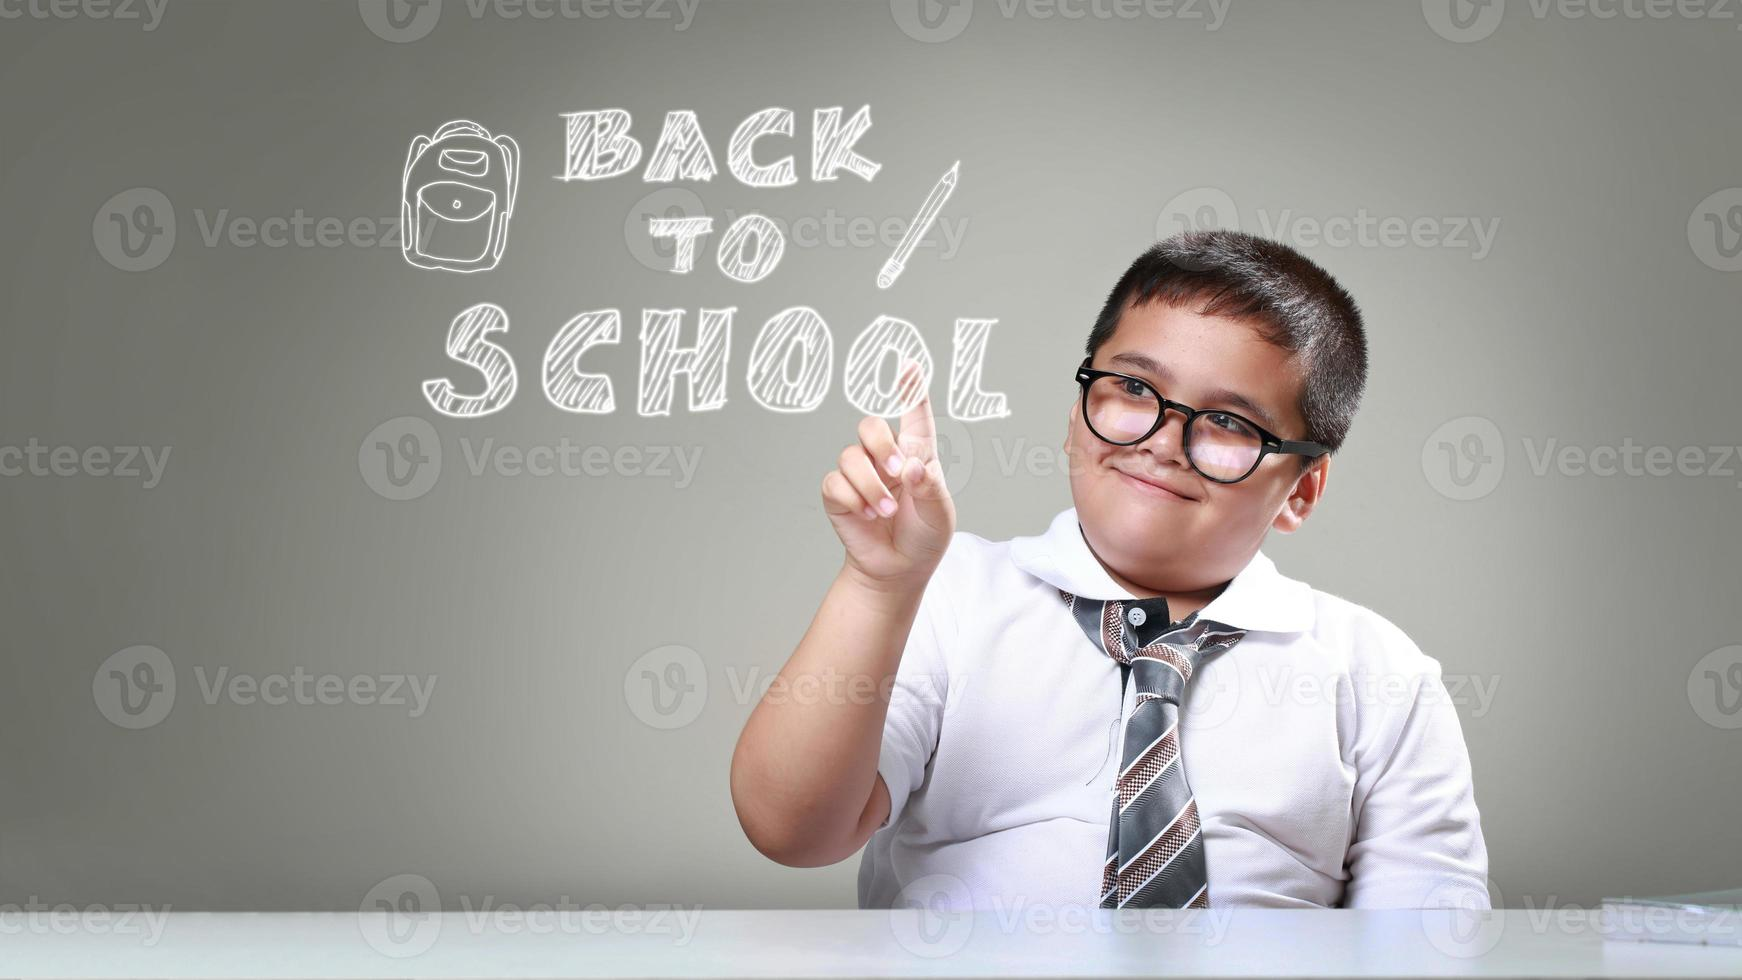 The boy pointing back to school photo